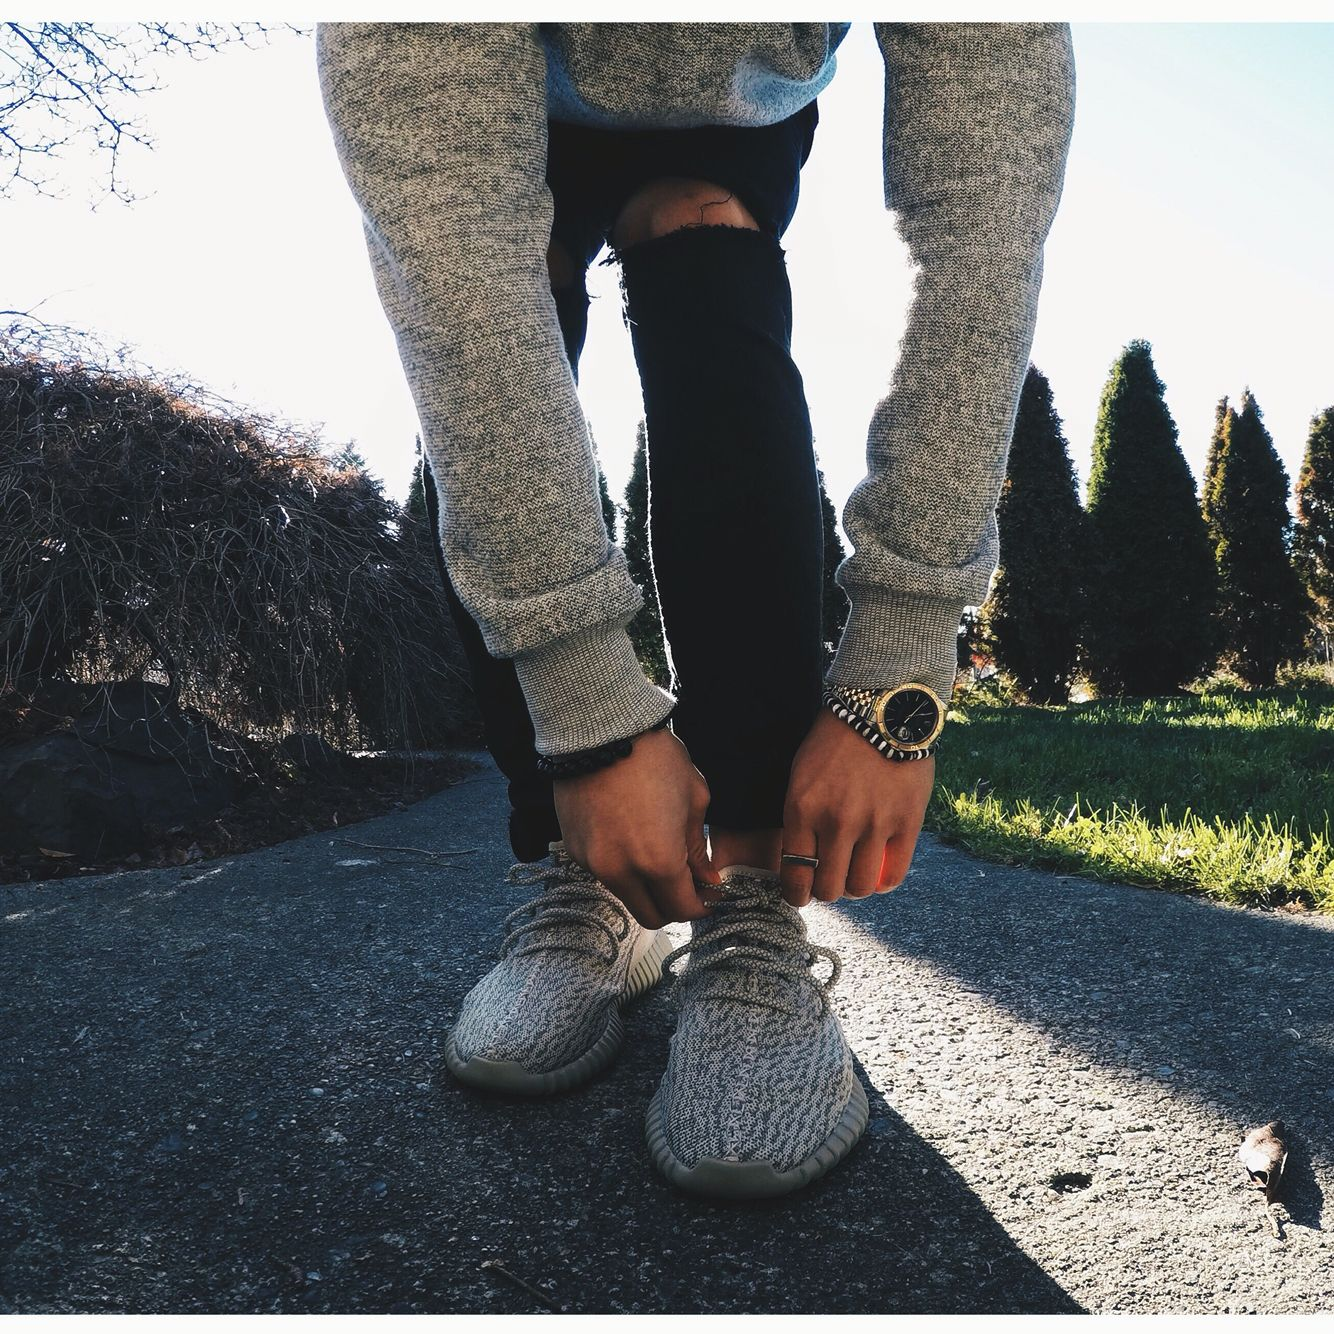 f56065bf668 ADIDAS YEEZY BOOST 350 moonrock. Alternative sweater. Rolex date just.